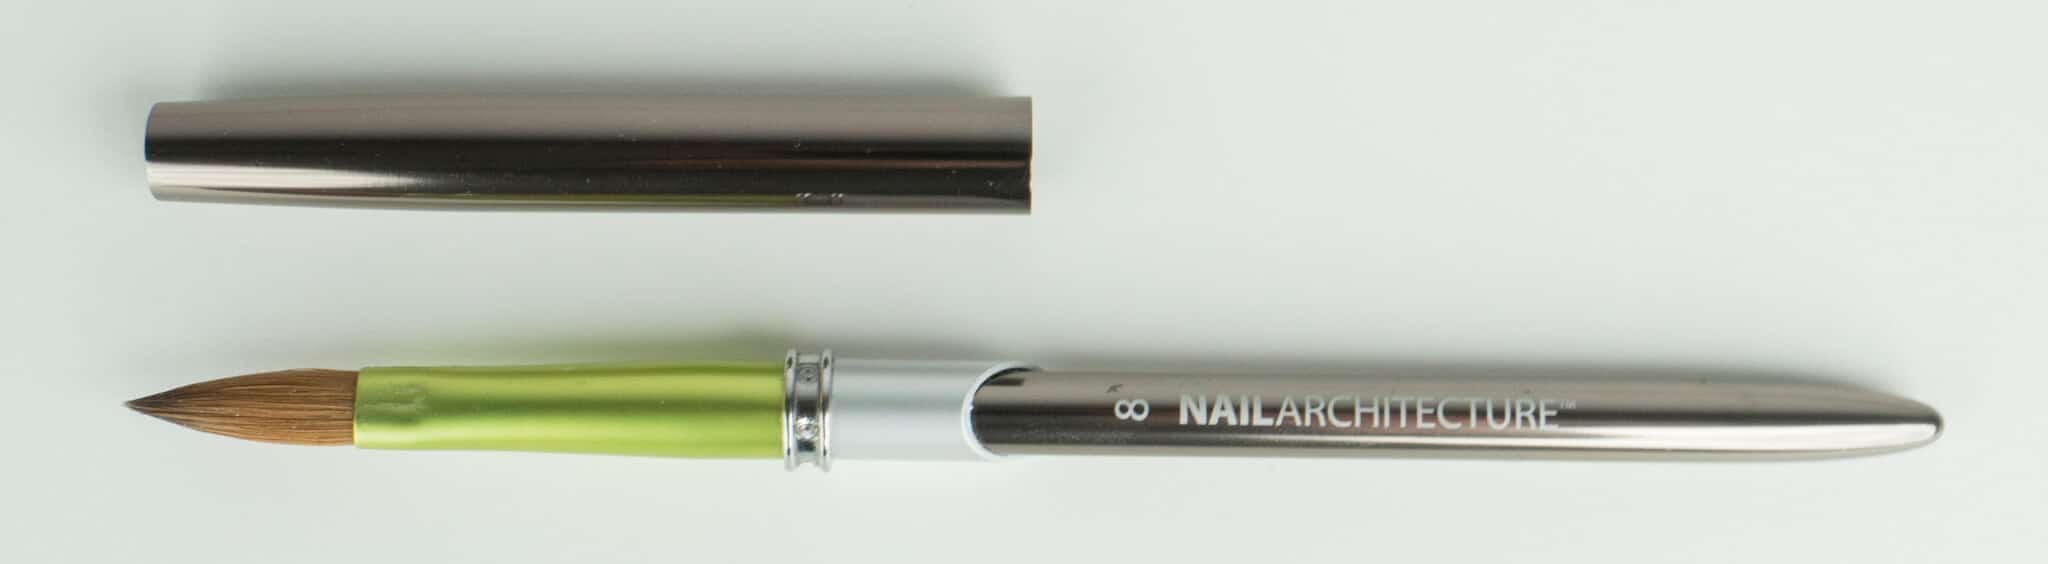 Nail Architecture size 8 pencil brush with cap next to it